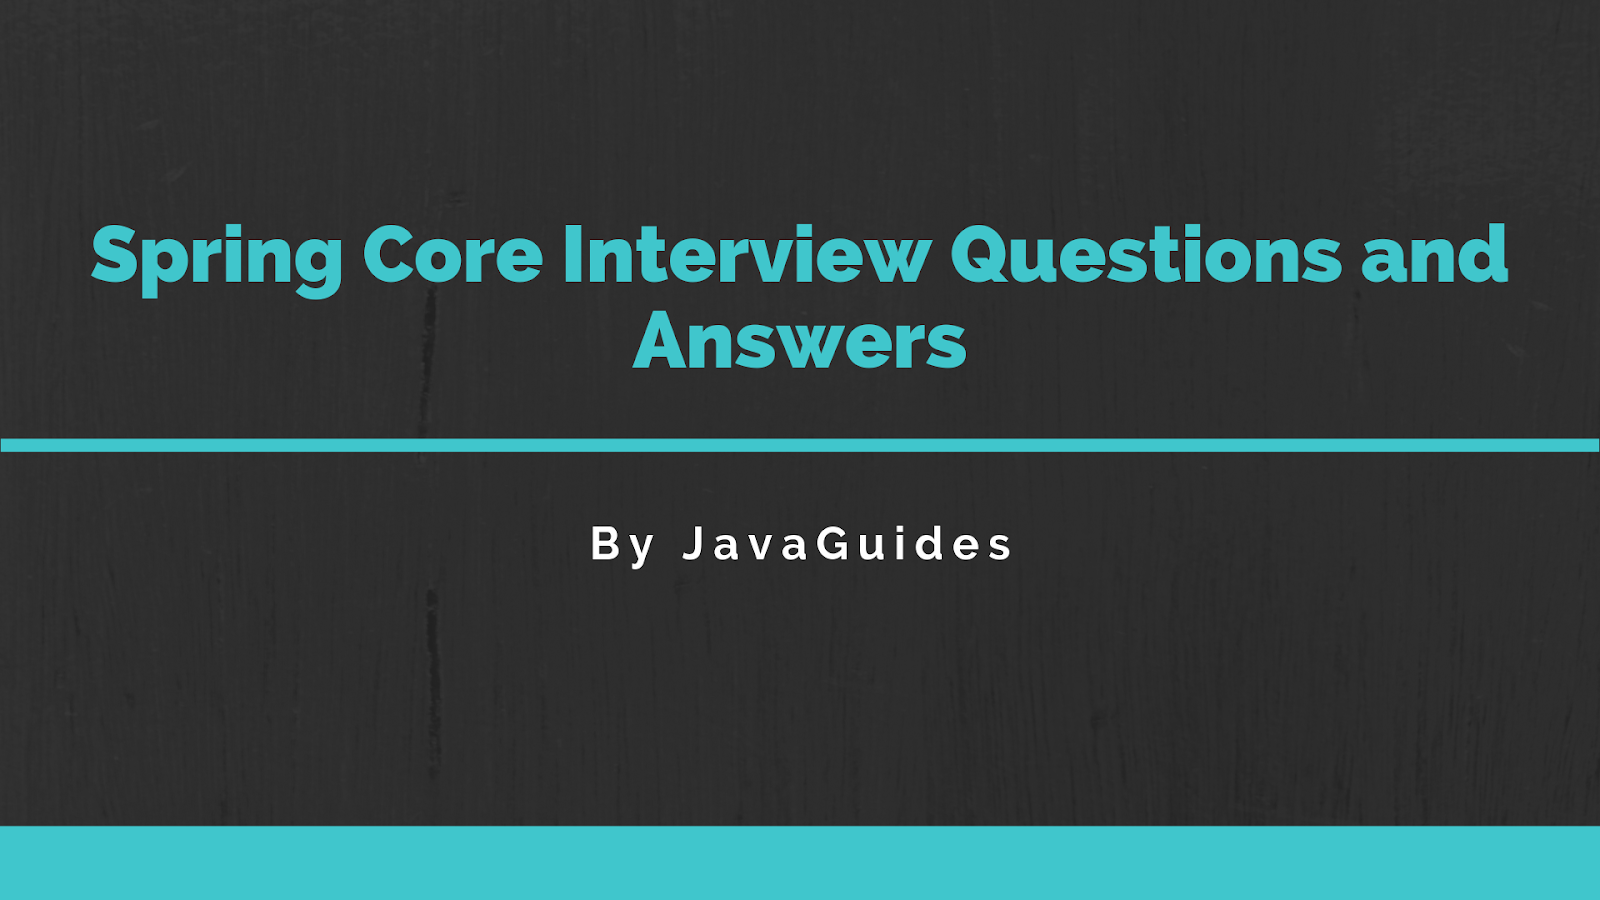 Spring Core Interview Questions and Answers